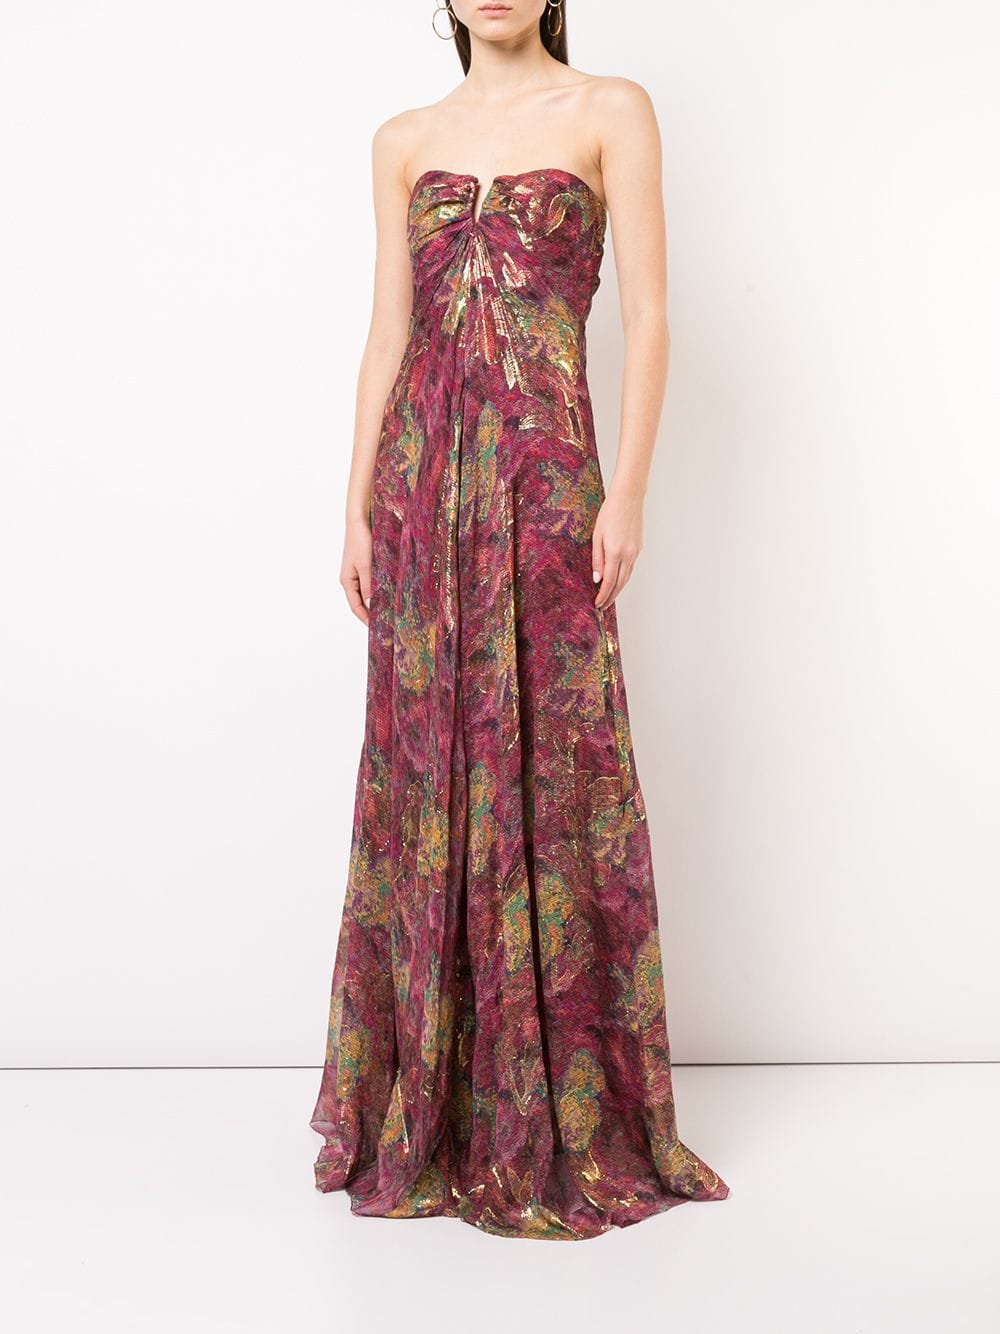 a5406ba399a7 NICOLE MILLER Embroidered Strapless Maxi Burgundy Dress - We Select ...